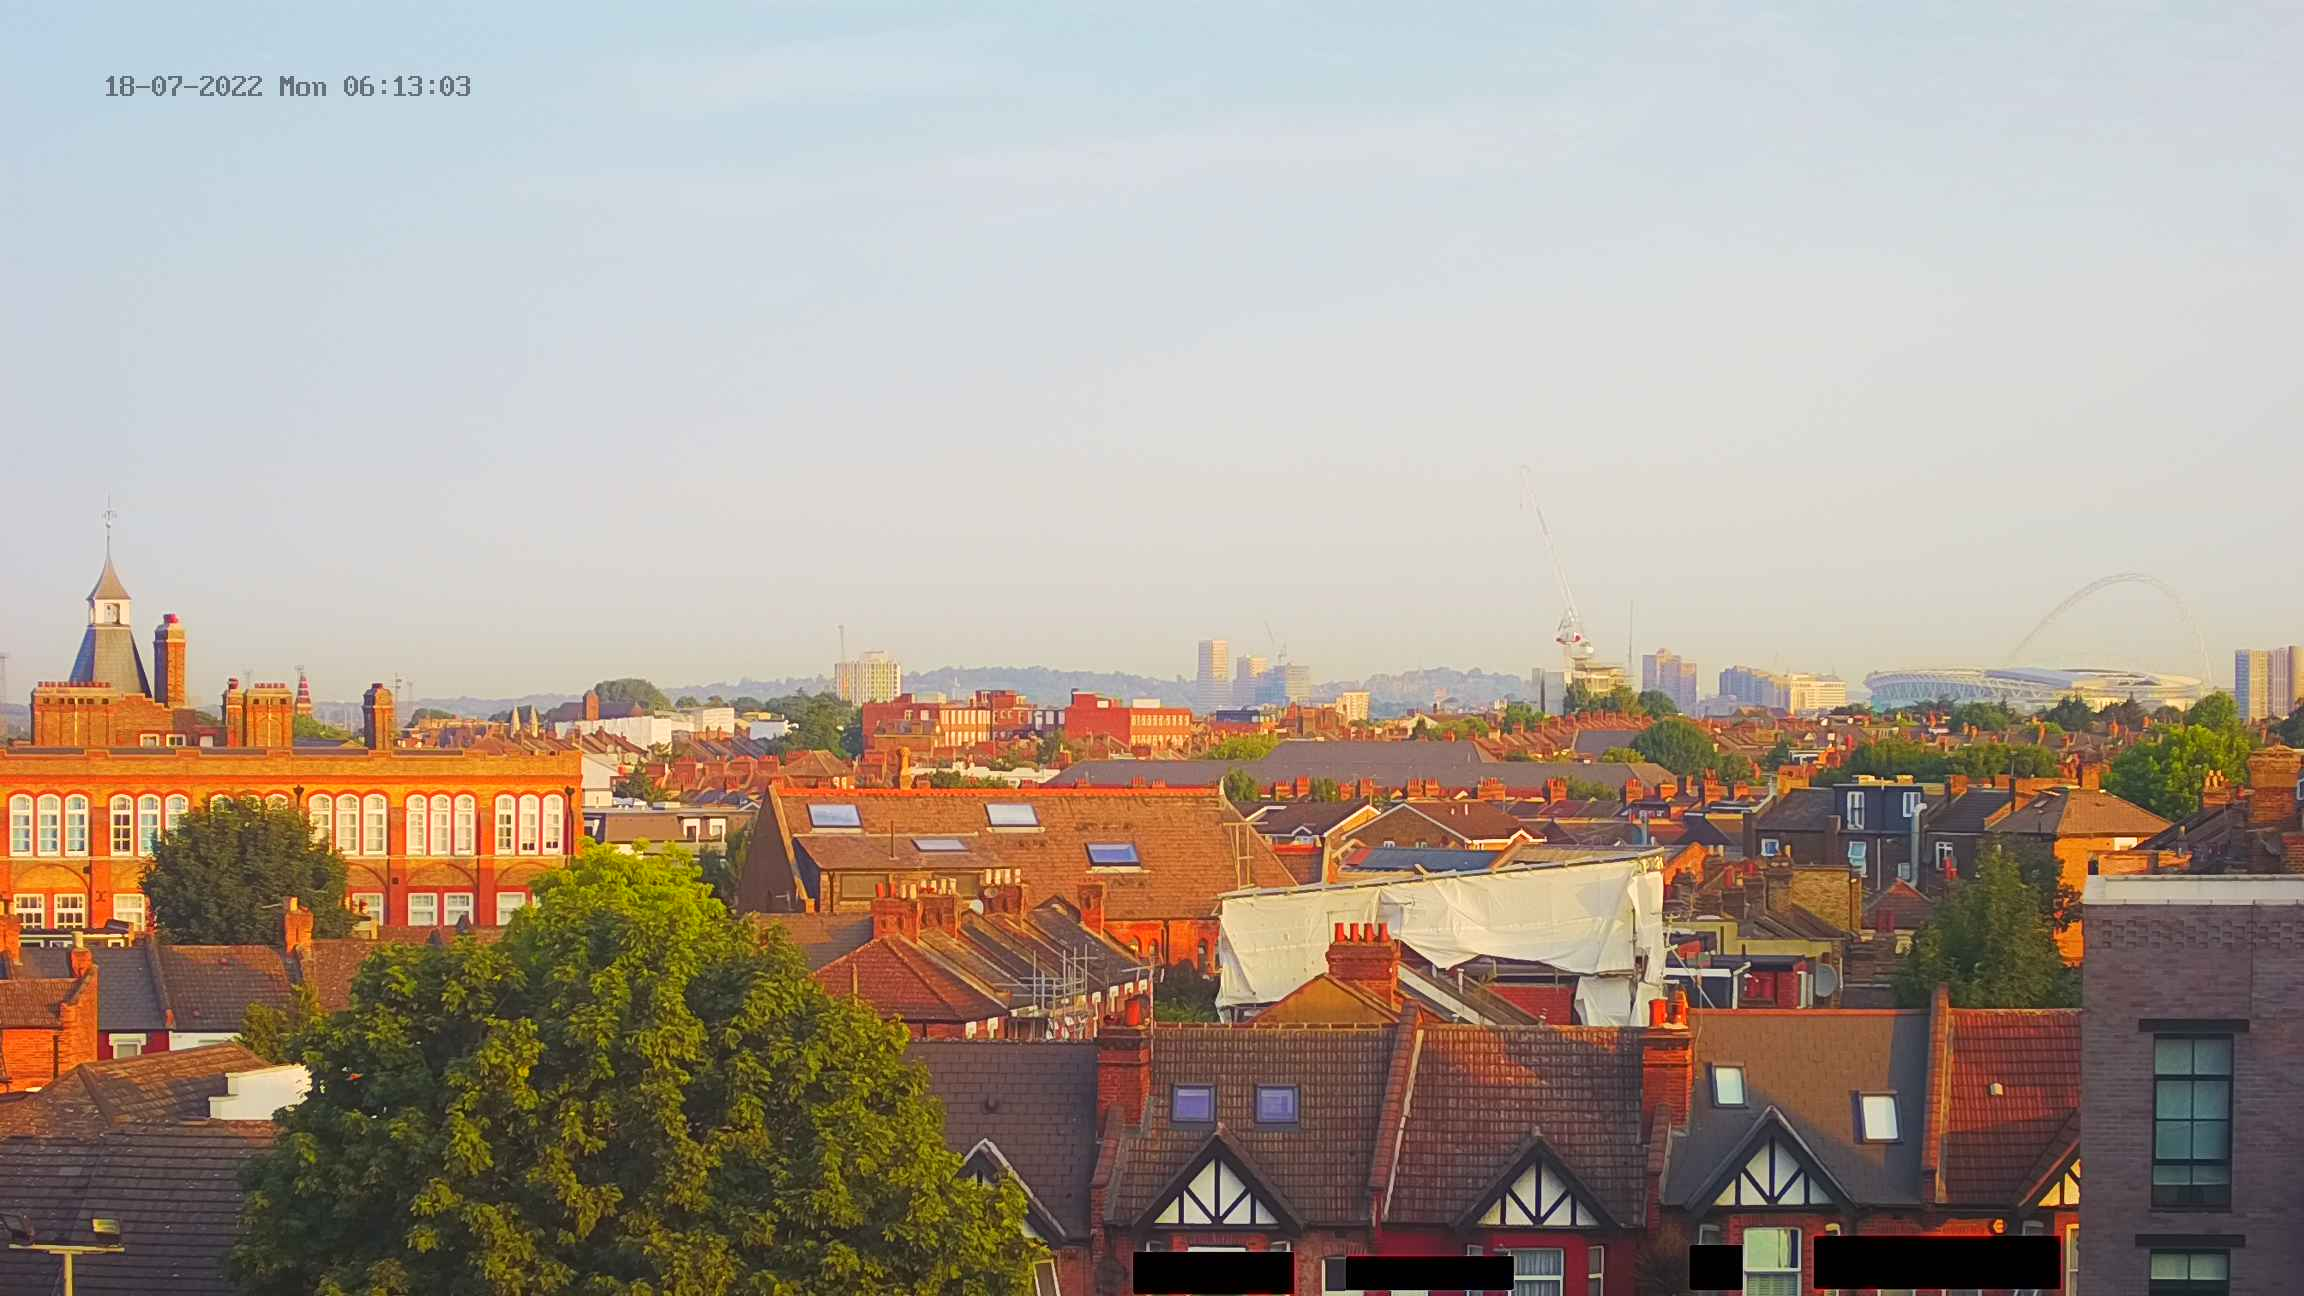 Image from a webcam showing a view of north-west London, with Wembley Stadium on the horizon on the right, and a spire on a school on the left. Houses from streets in Kensal Green are visible in the foreground.